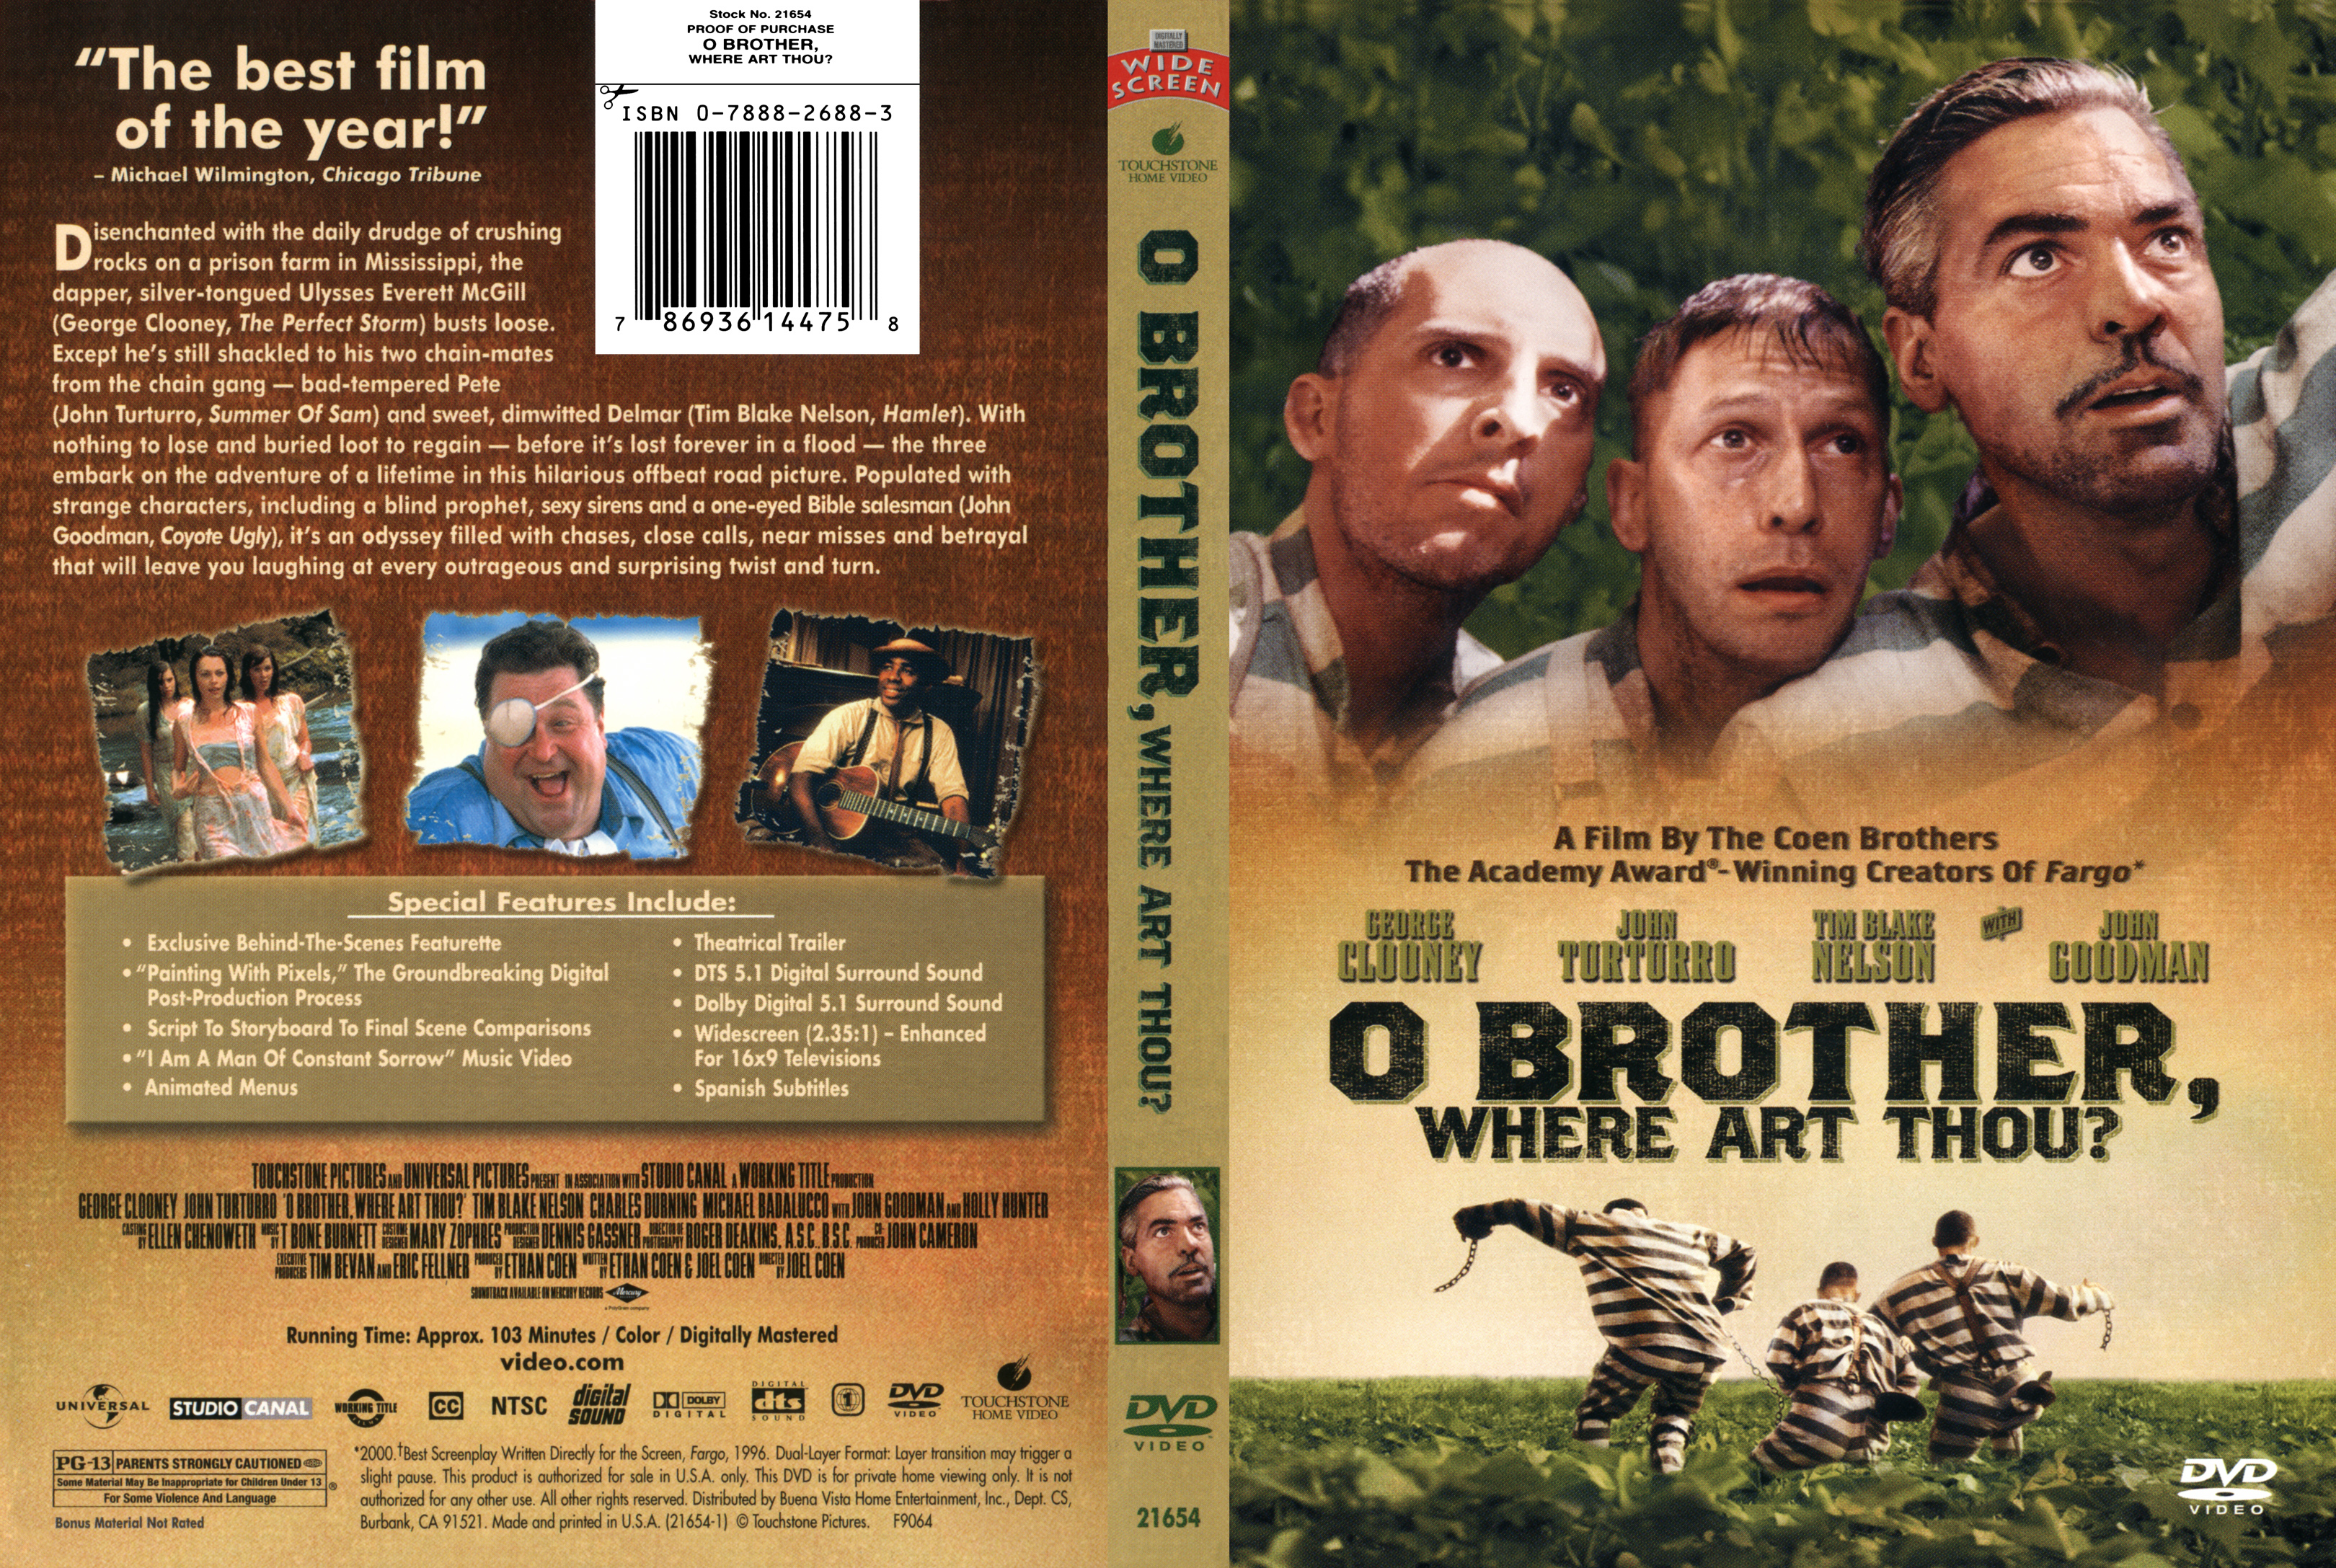 012 O Brother Where Art Thou Essay Example 211obrotherwhereartthou Scan Hires Striking And The Odyssey Comparison Vs Compared To Full